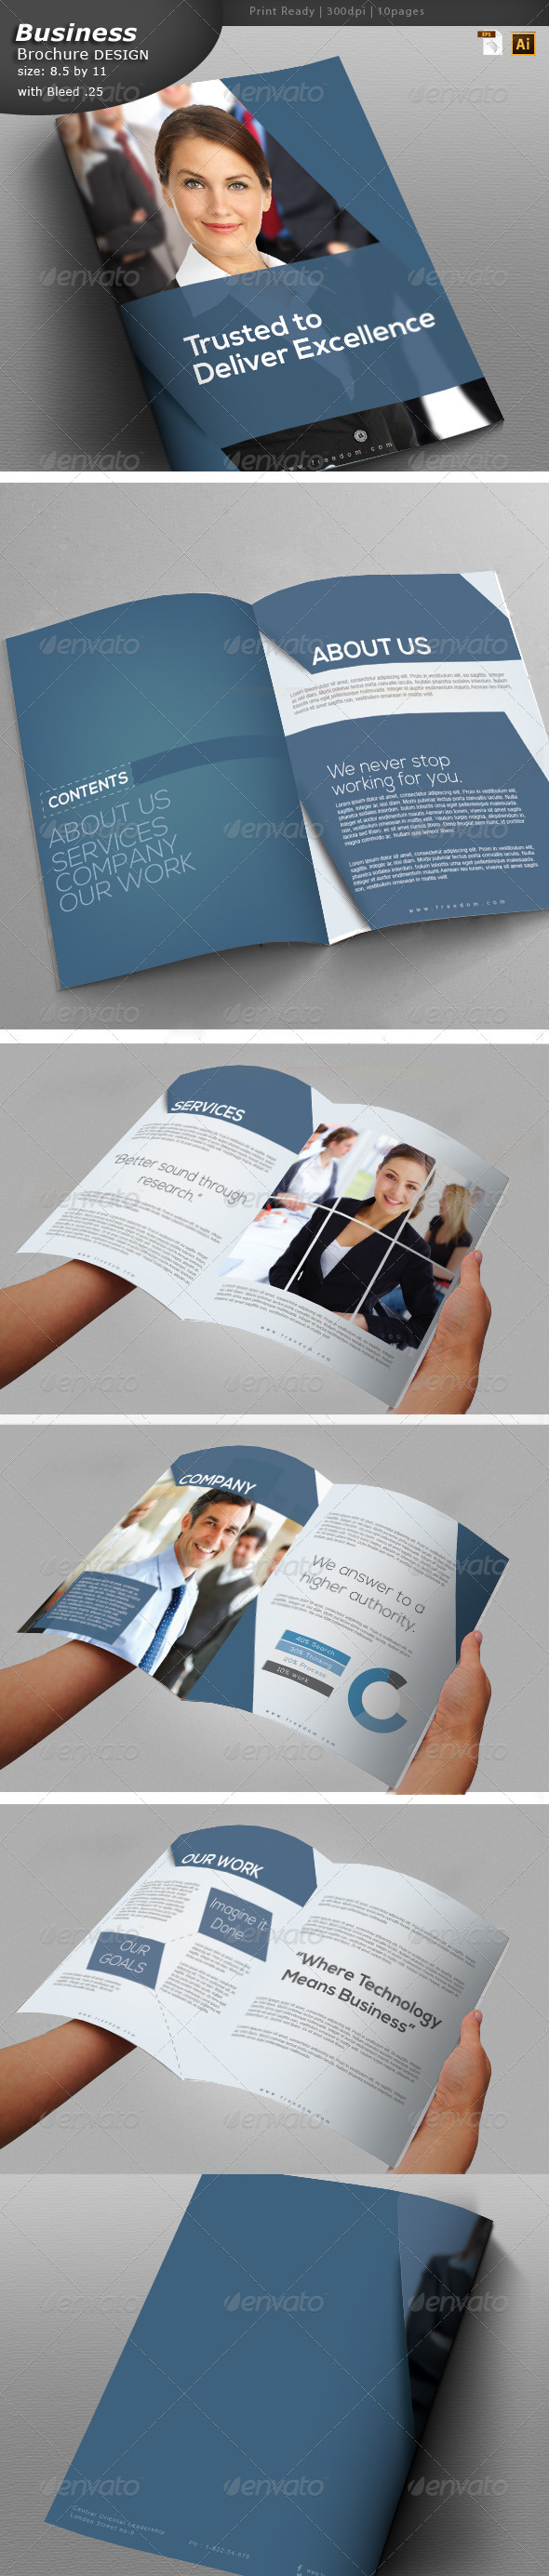 Marketing Brochure Design  - Corporate Brochures